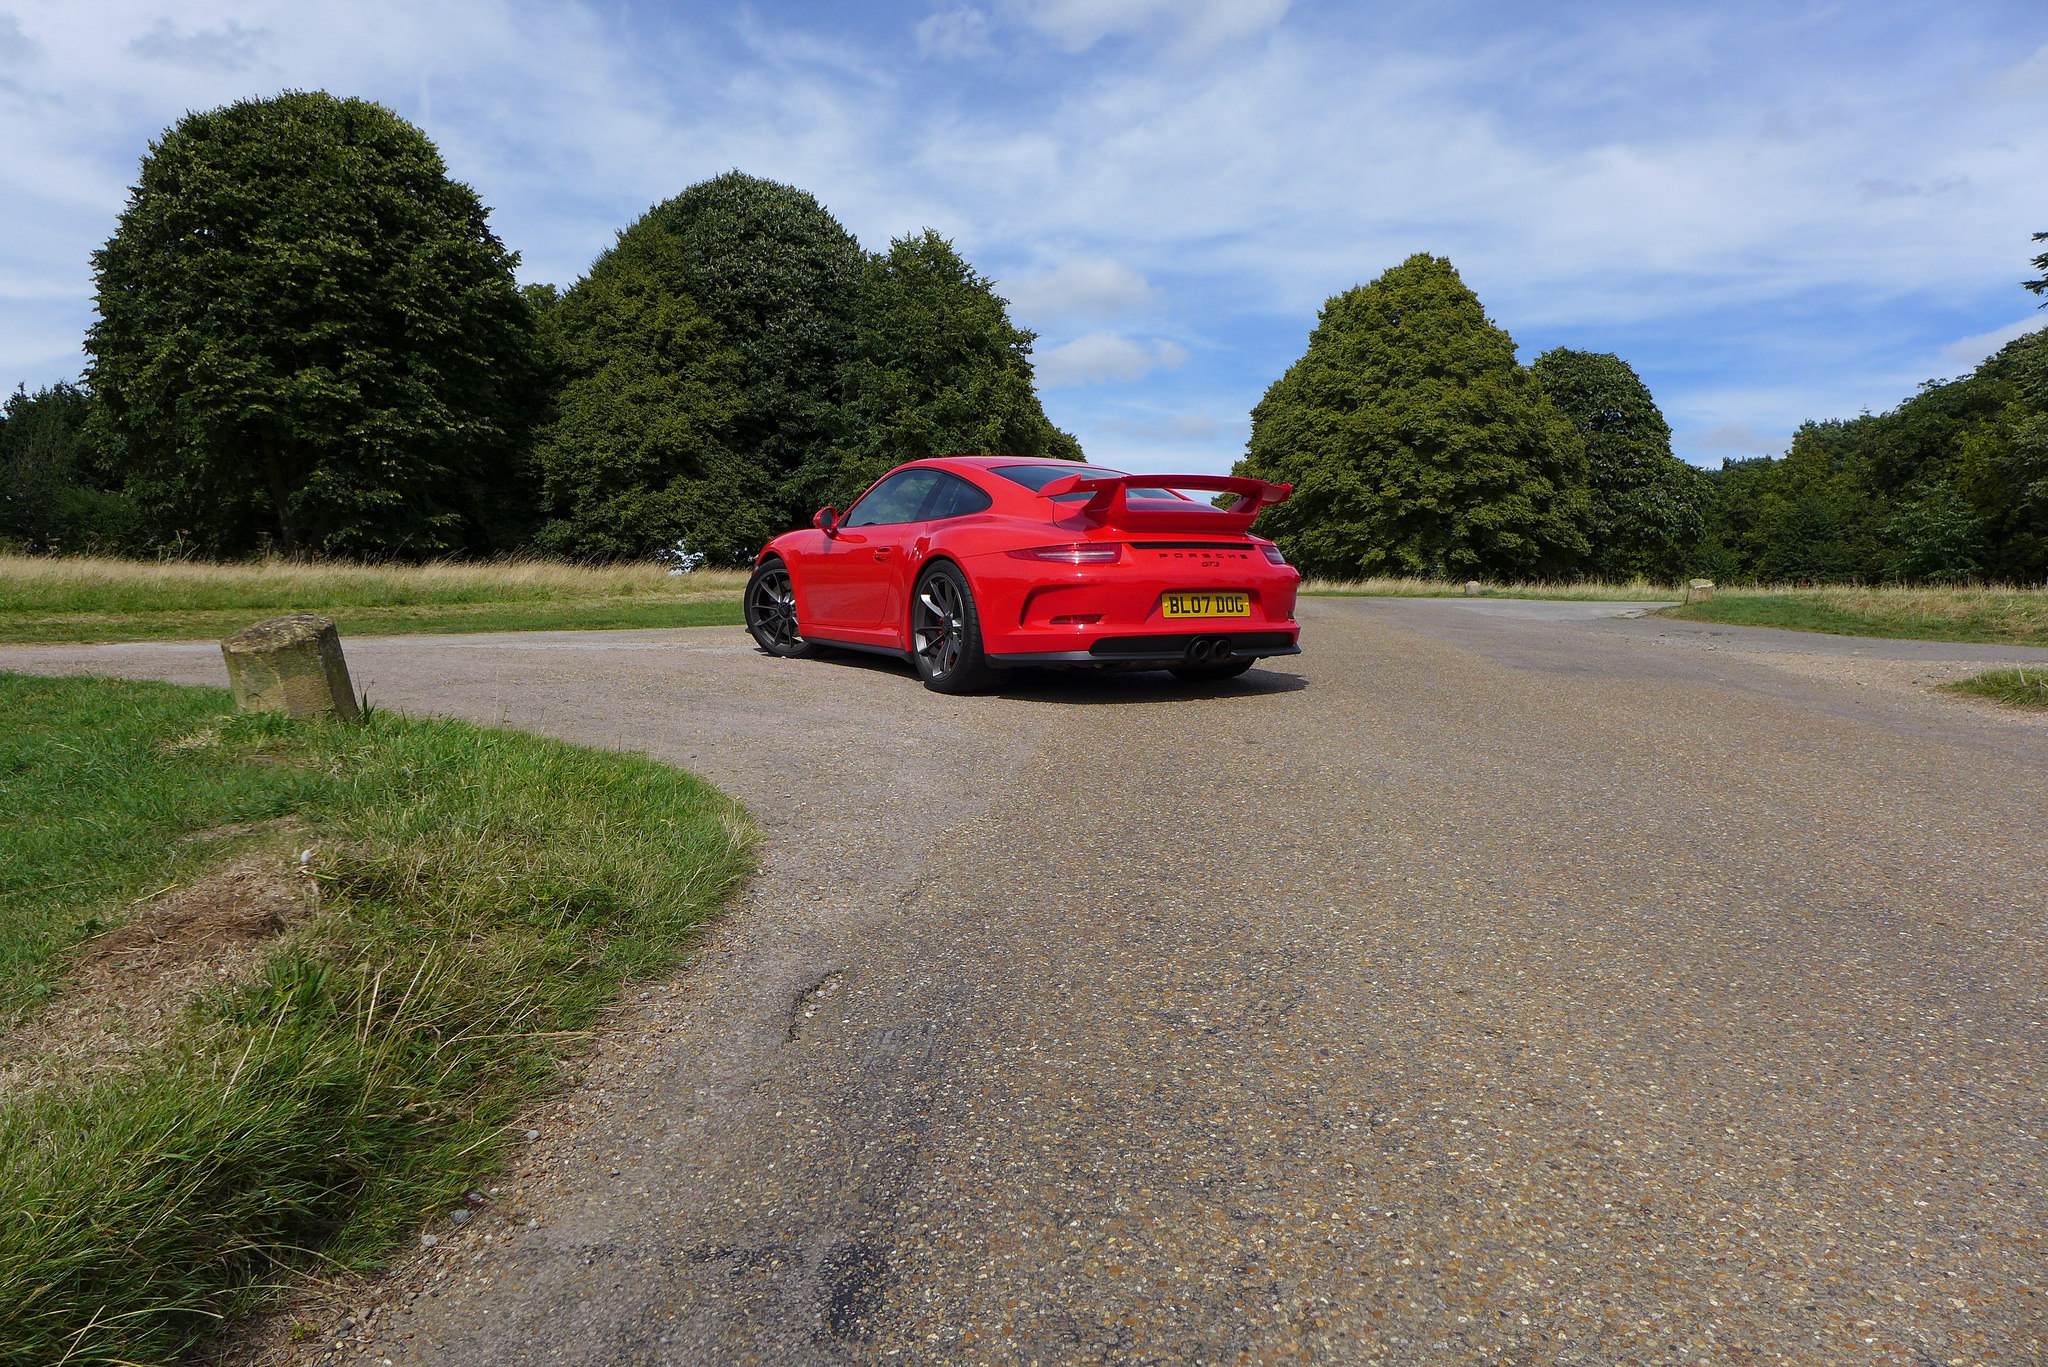 Got an afternoon to kill? Let's do 150 miles in the GT3.